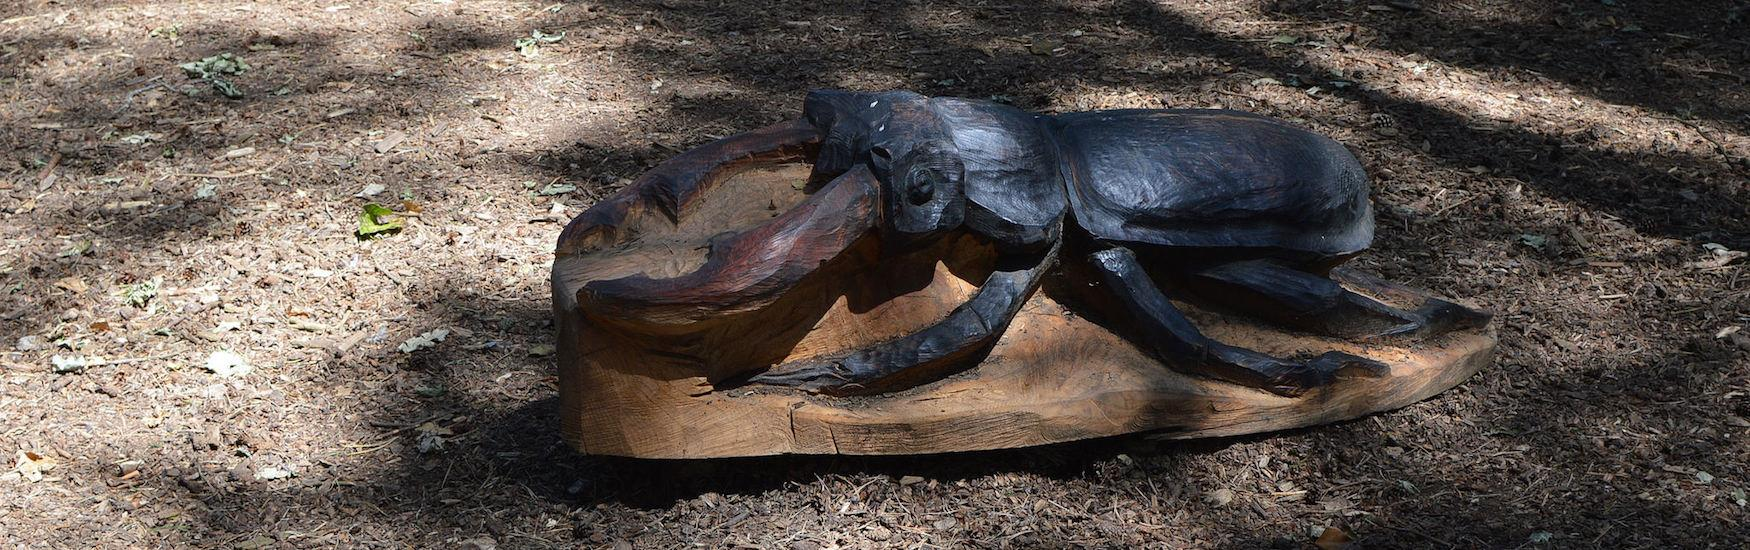 A sculpture of a beetle on the Queens Park Trail